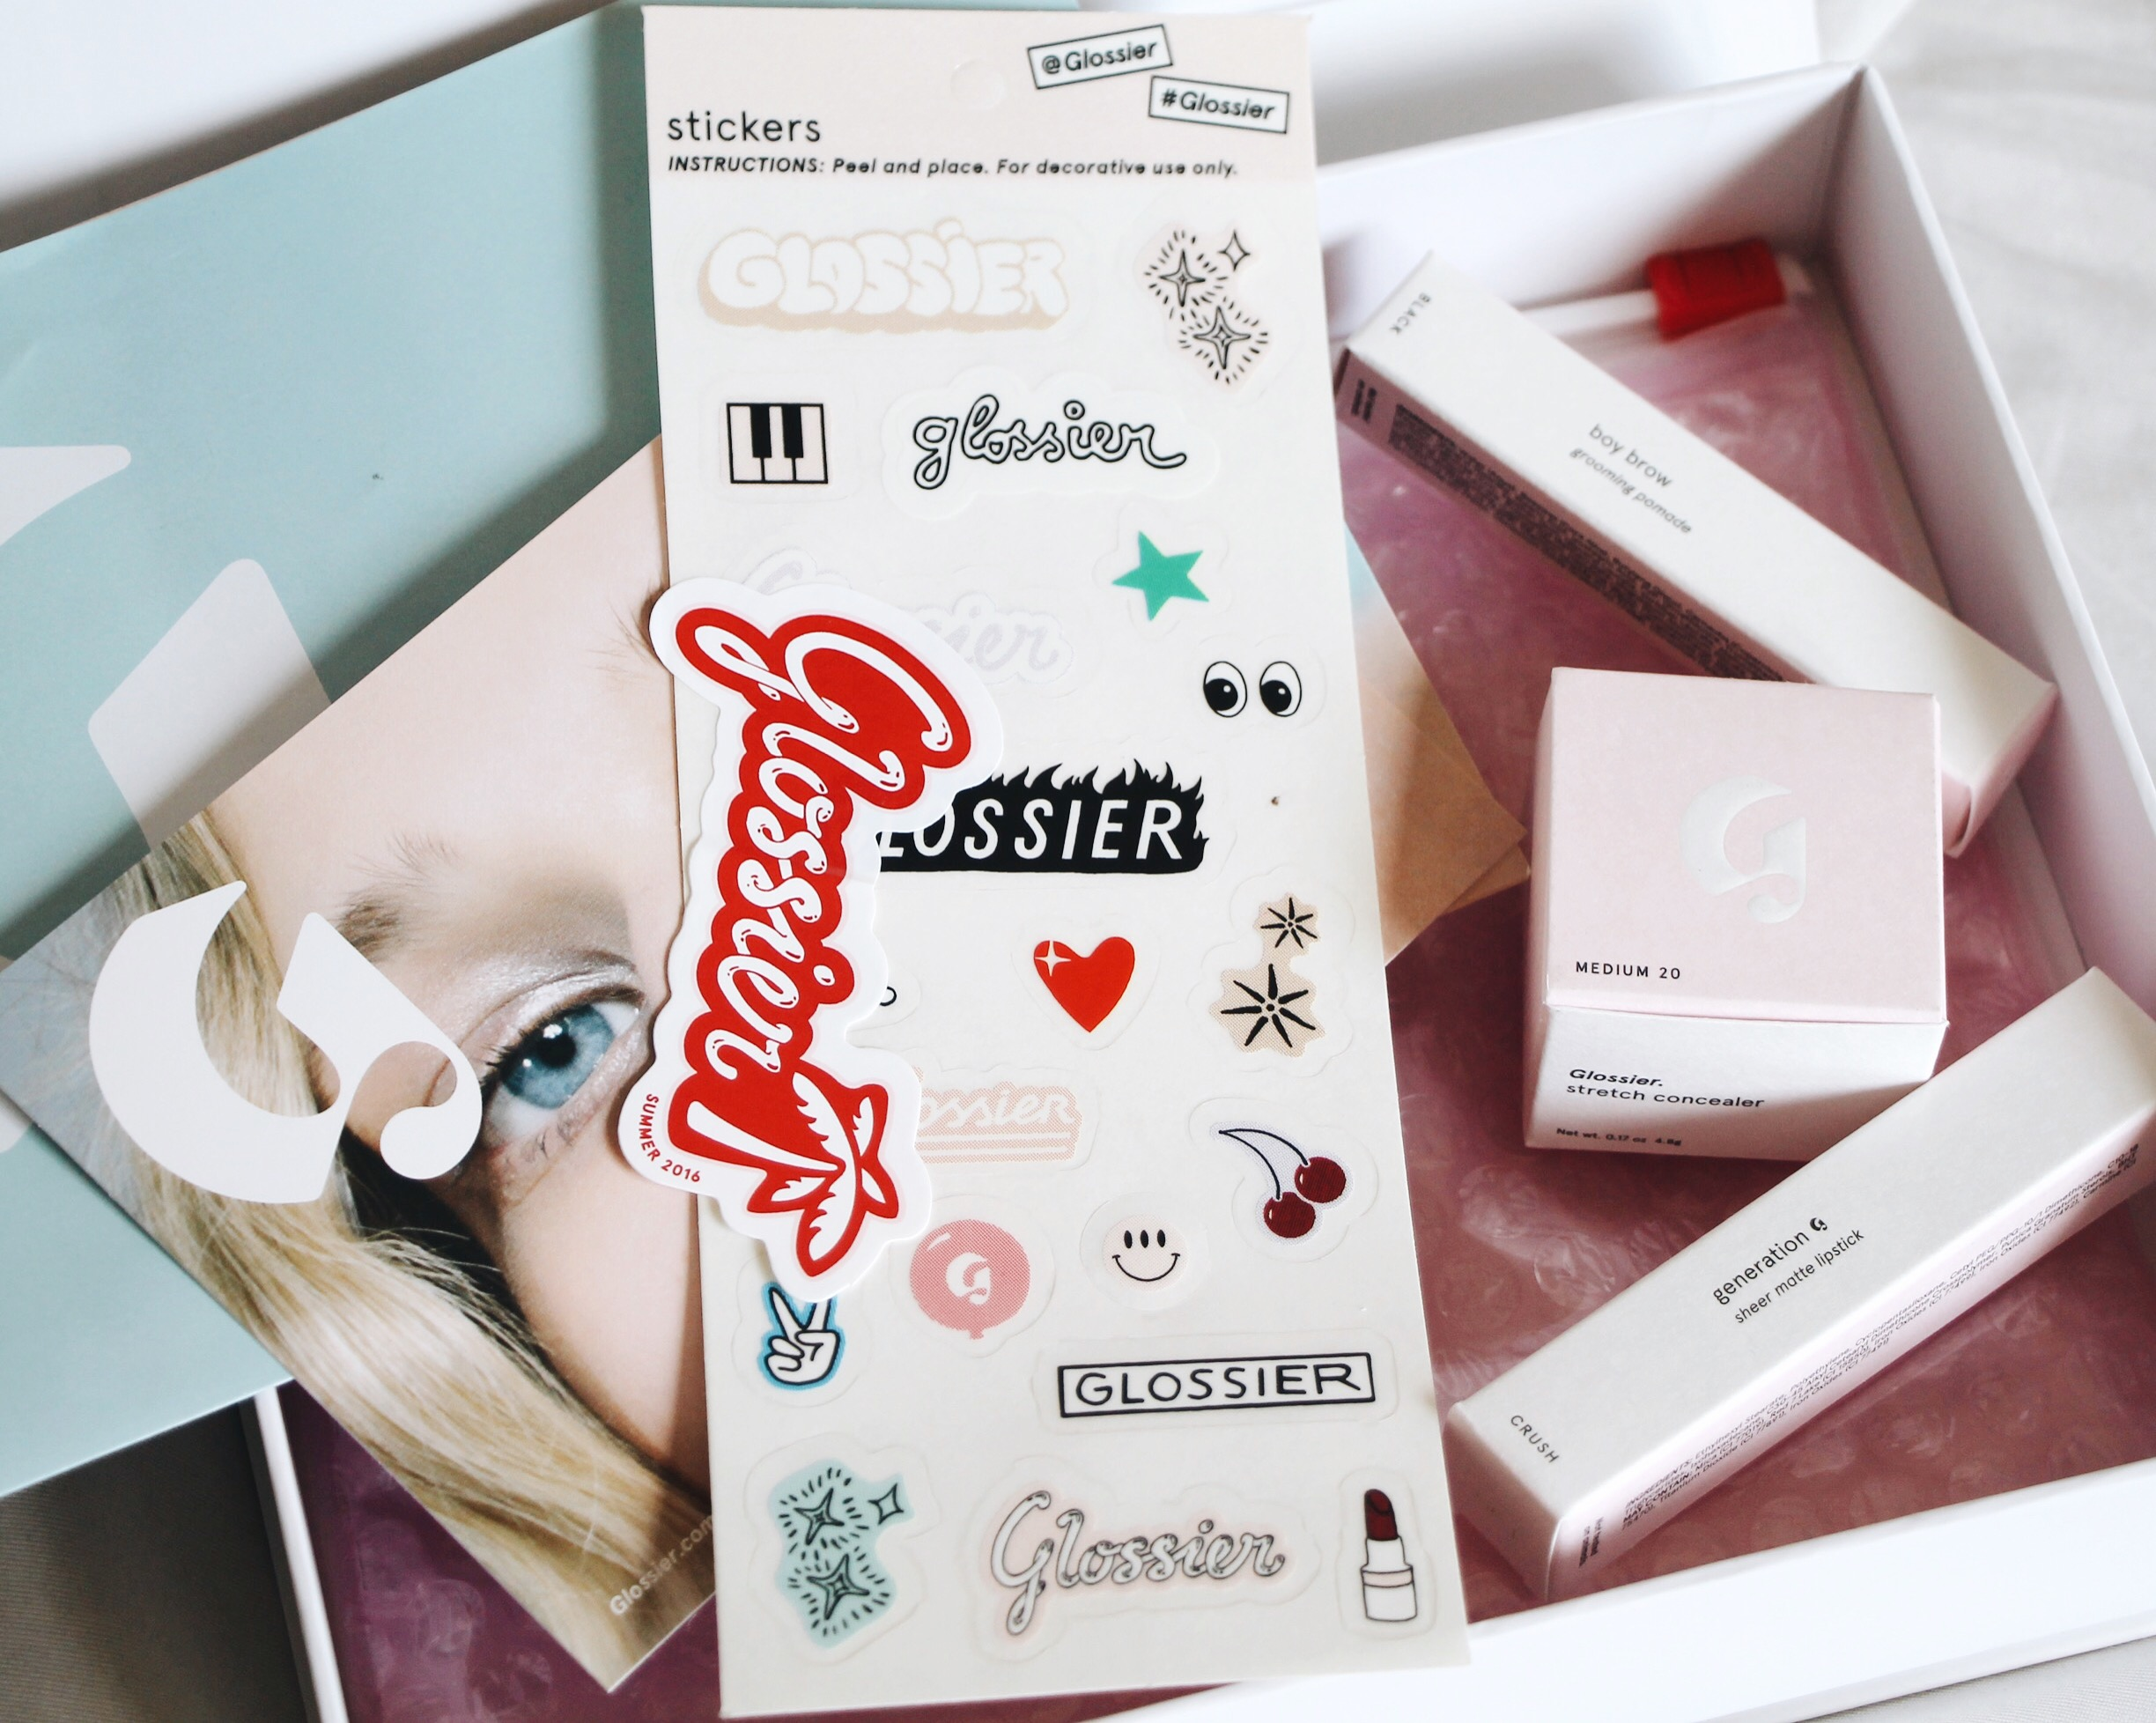 Glossier Phase 2 Set Review + Unboxing, Glossier Phase 2 Set, Glossier, Glossier Makeup, Stretch Concealer, Generation G Lipstick, Boy Brow, Unboxing, Glossier Package, Glossier Packaging, Glossier Branding, Glossier Unboxing